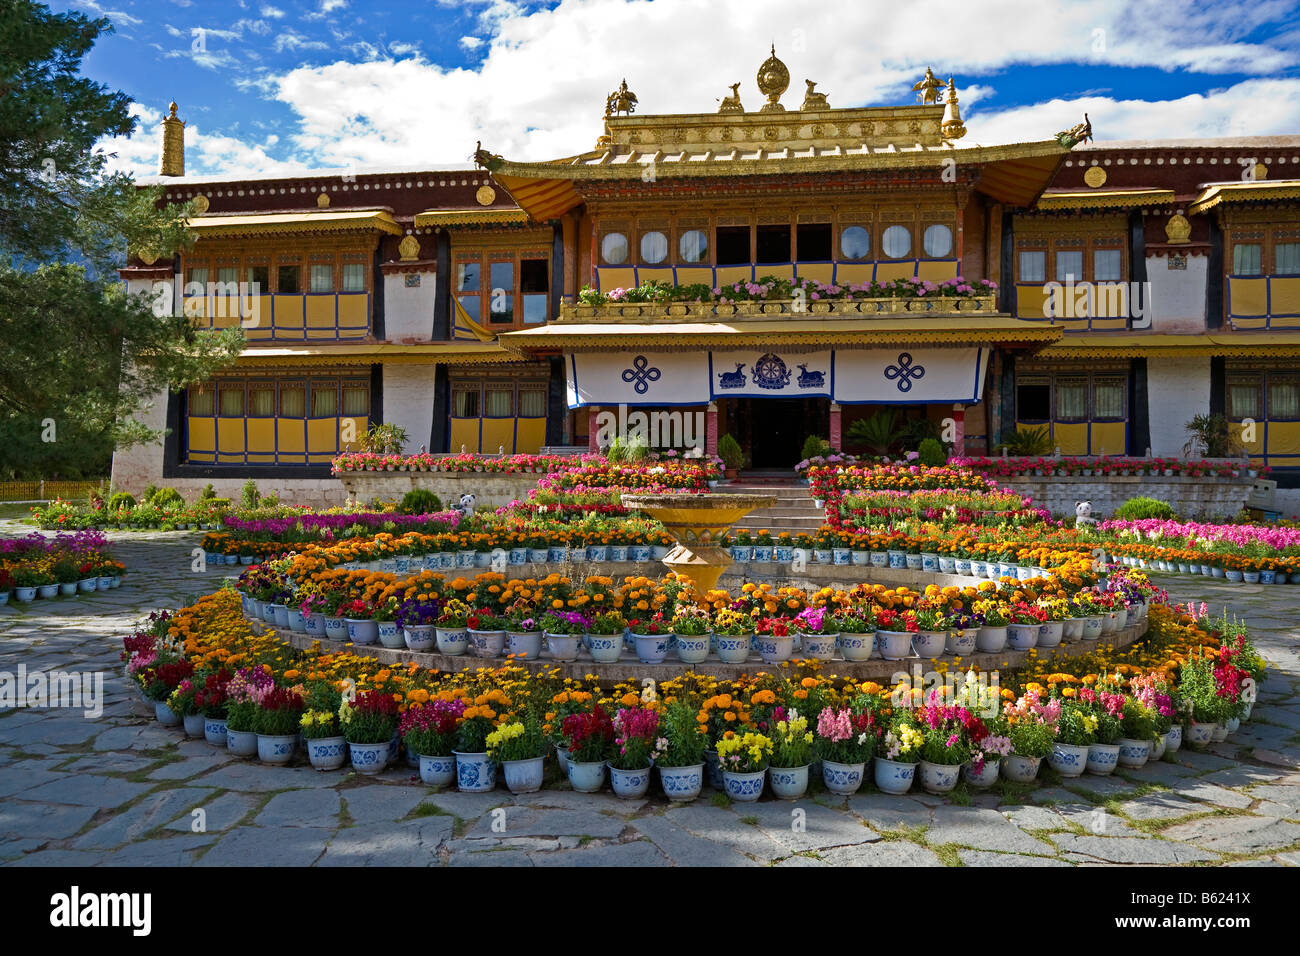 Norbulingka or Jewel Park, Tagten Migyur Podrang, the Dalai Lama's Summer Palace, Lhasa, Tibet, China. JMH3757 - Stock Image